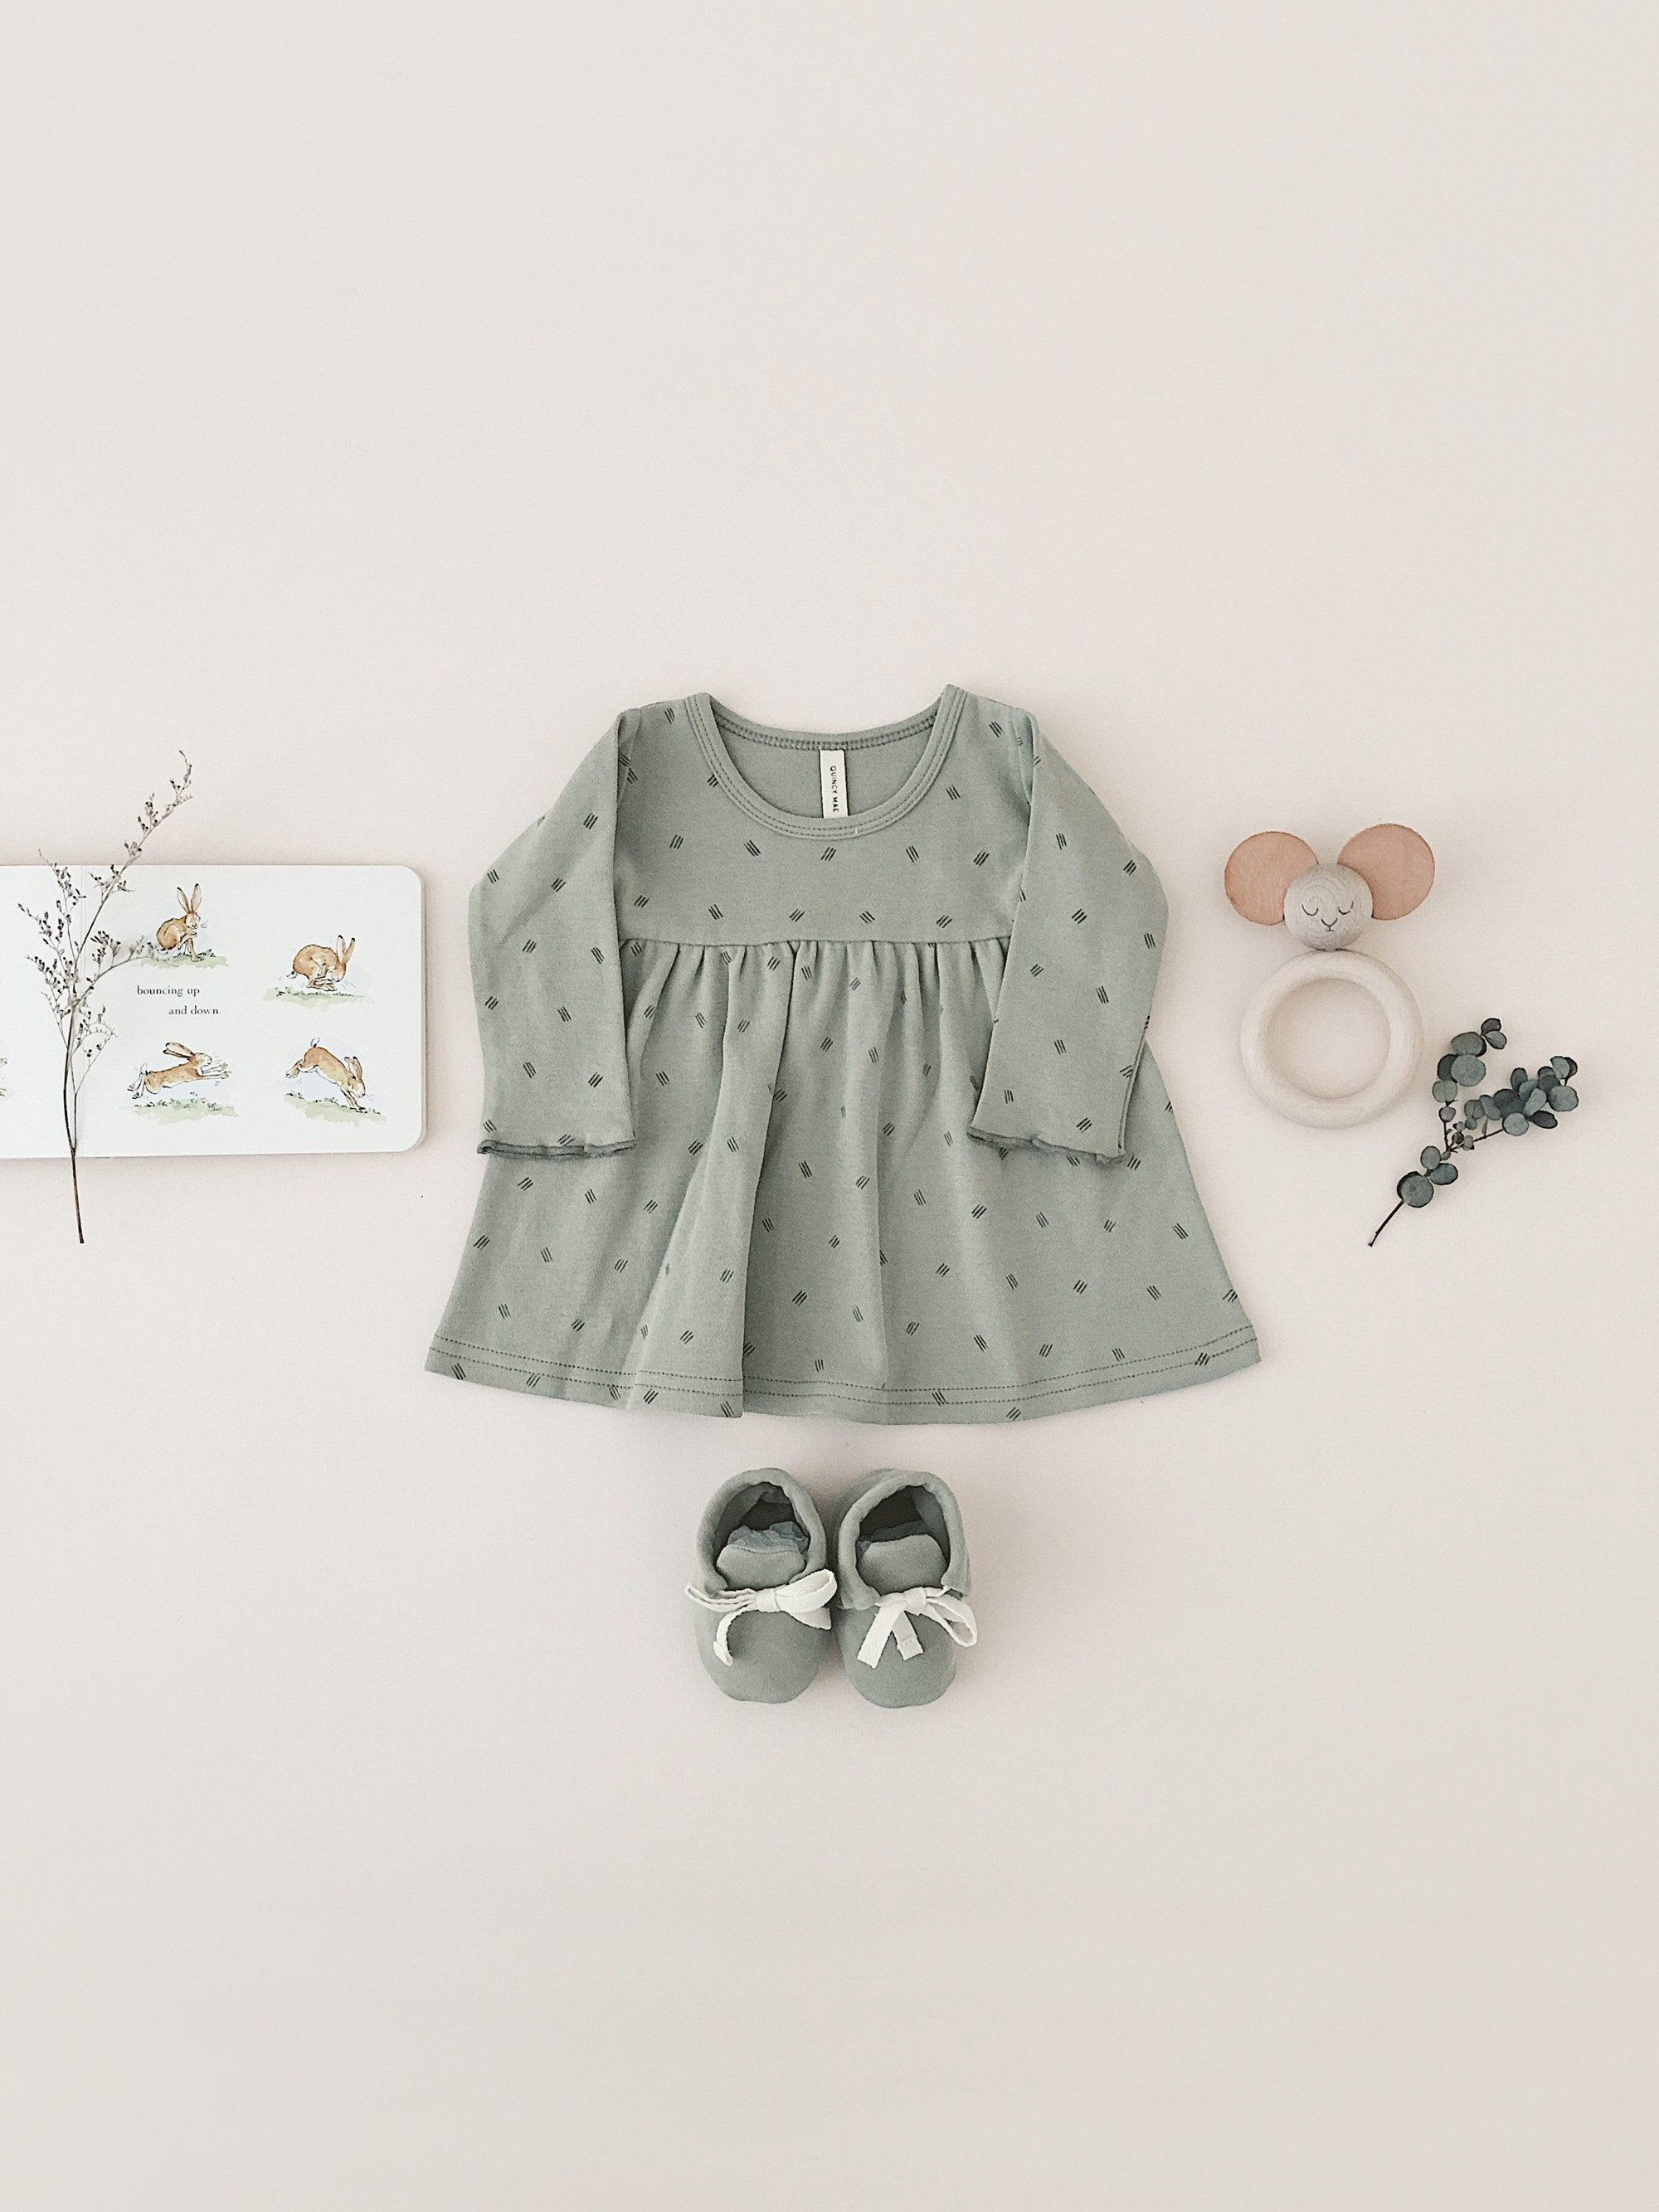 Quincy Mae - Baby Dress (Sage)